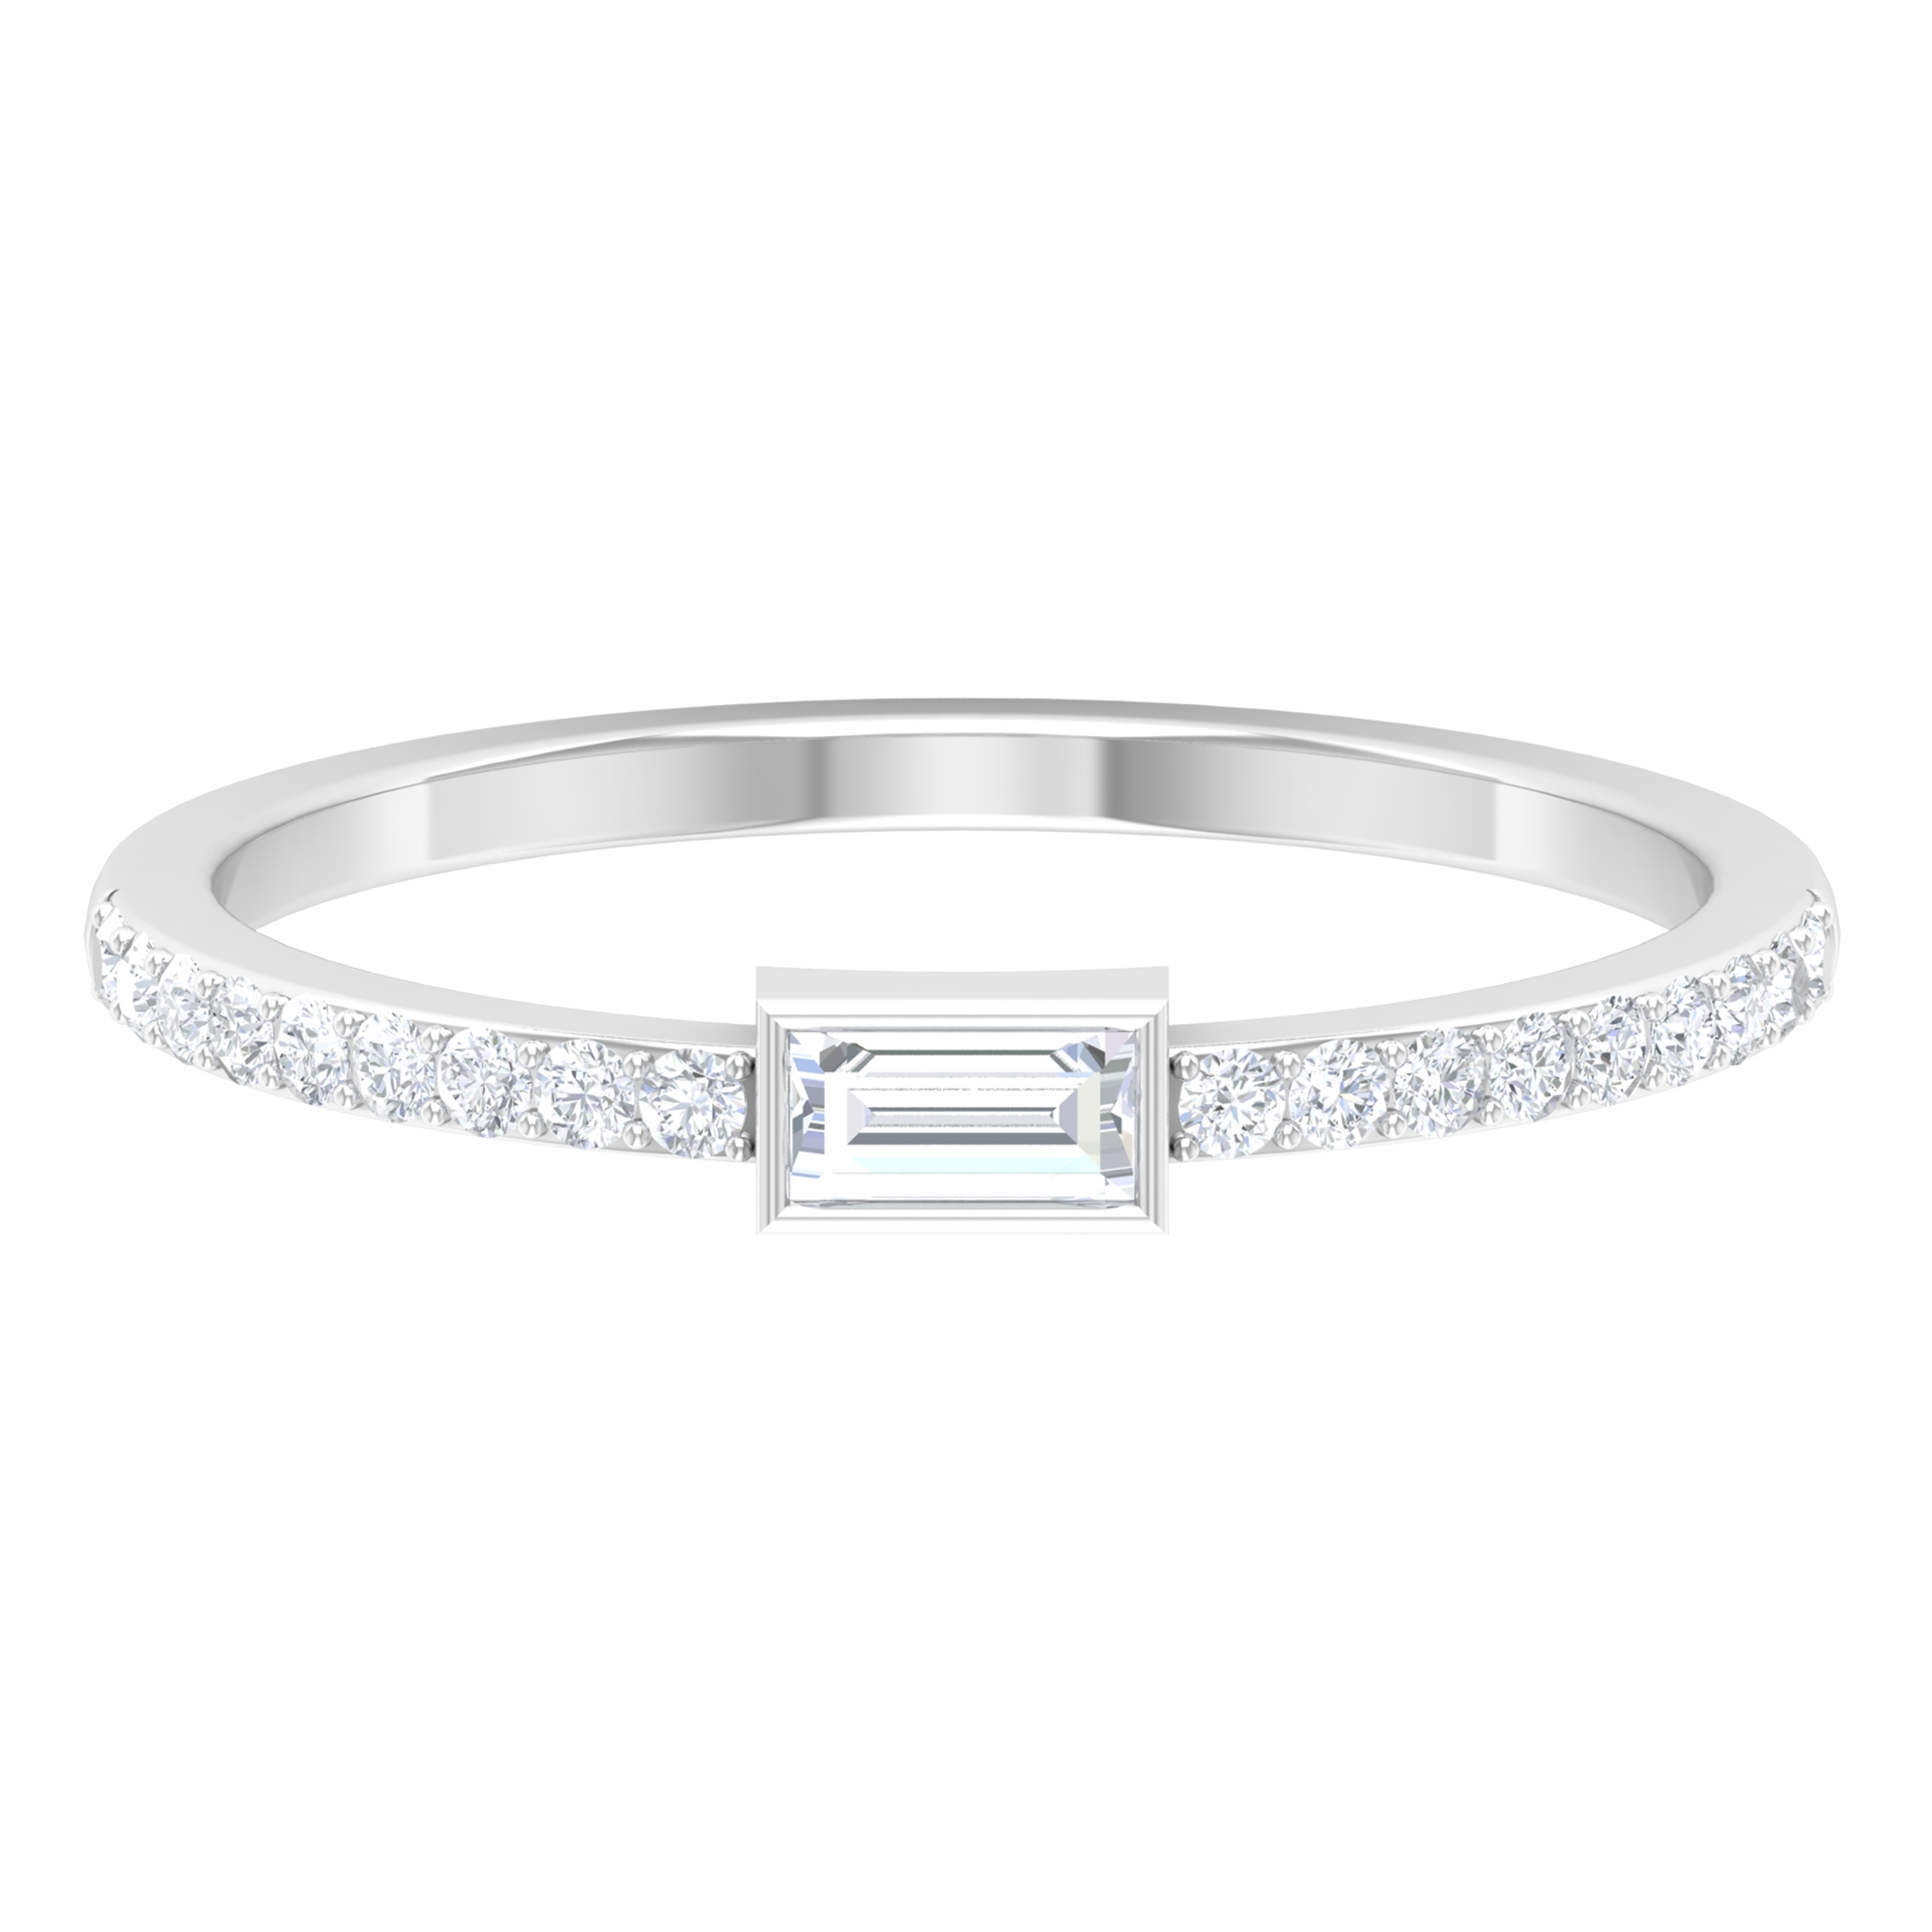 1/2 CT Baguette Cut Diamond Solitaire Ring with Surface Prong Set Side Stones